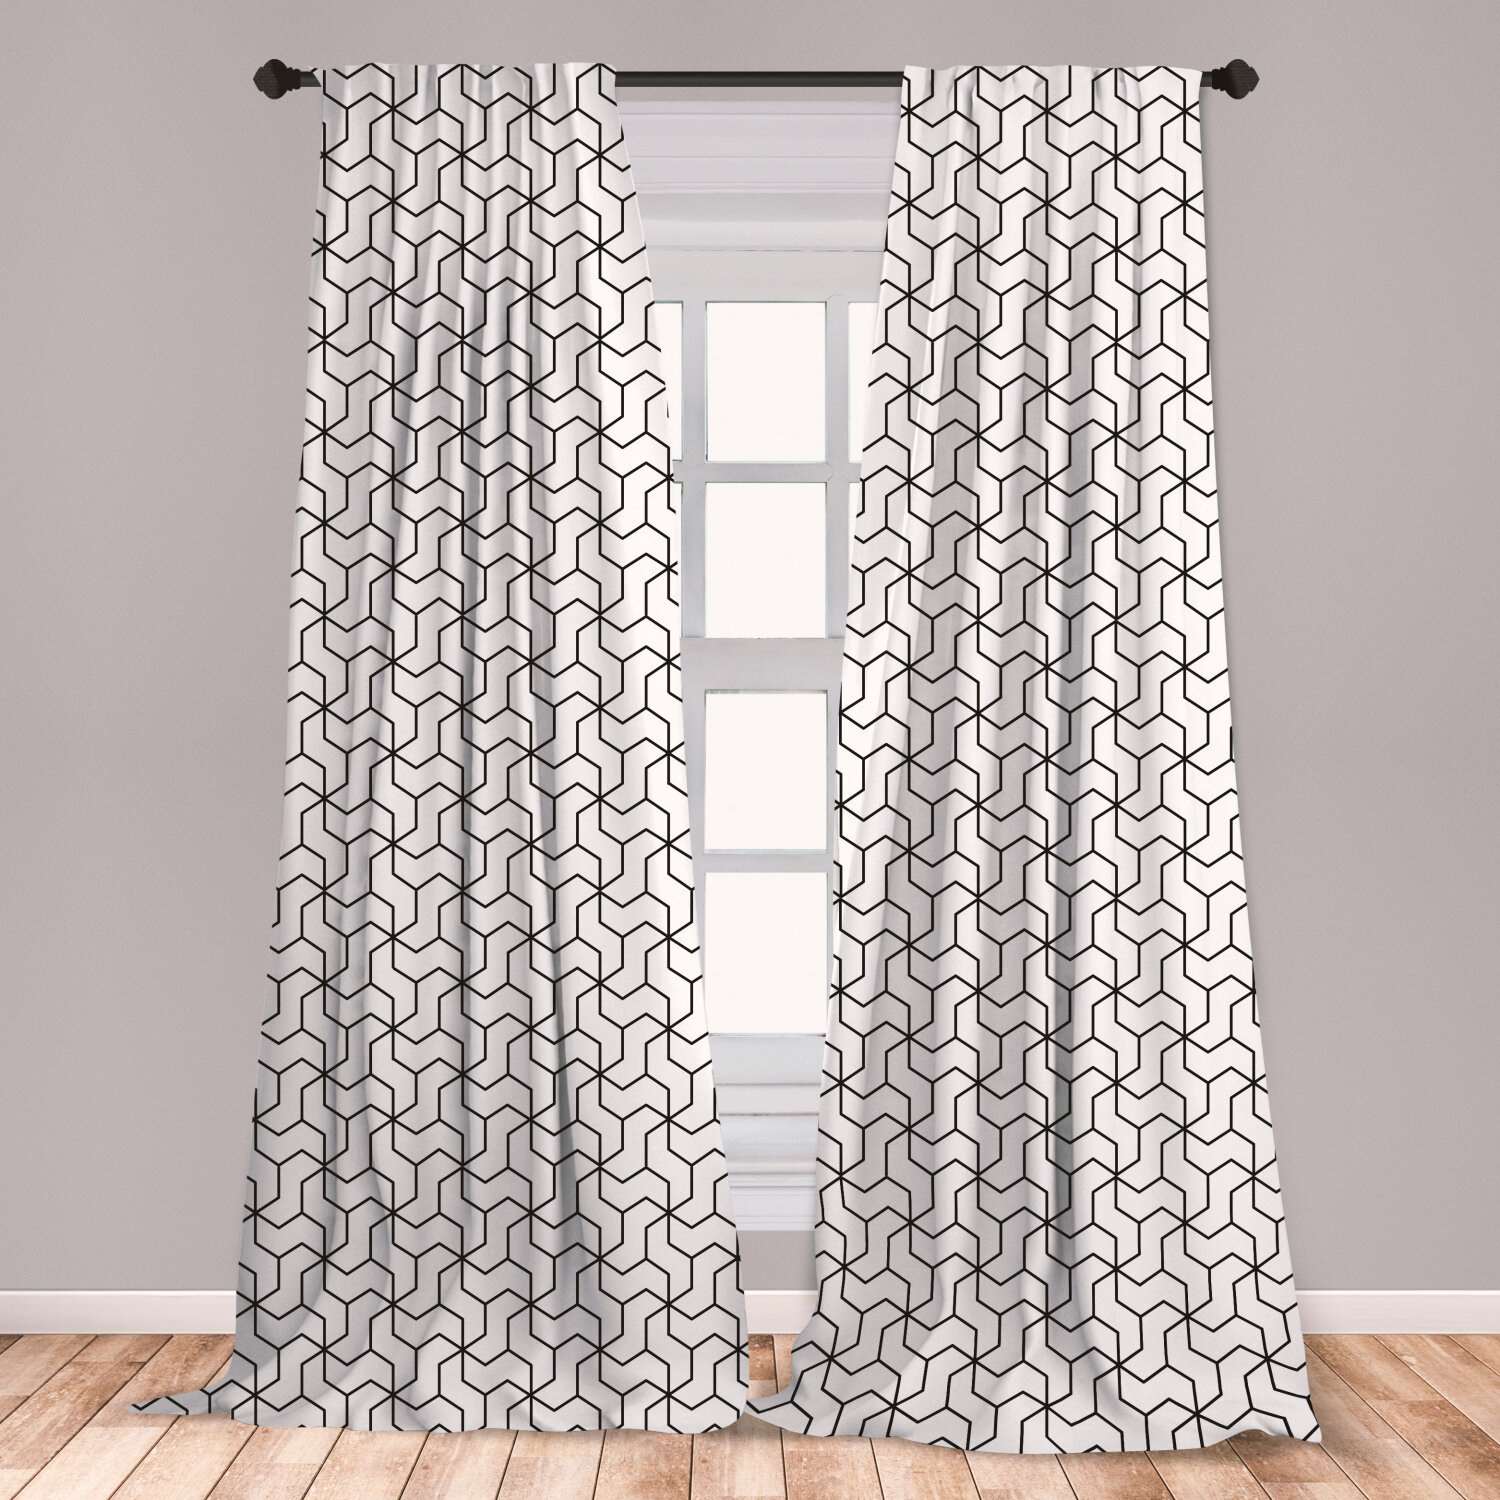 East Urban Home Ambesonne Black And White Window Curtains Geometric Arrangement With Monochrome Design Lines And Optical Illusion Lightweight Decorative Panels Set Of 2 With Rod Pocket 56 X 63 Black White